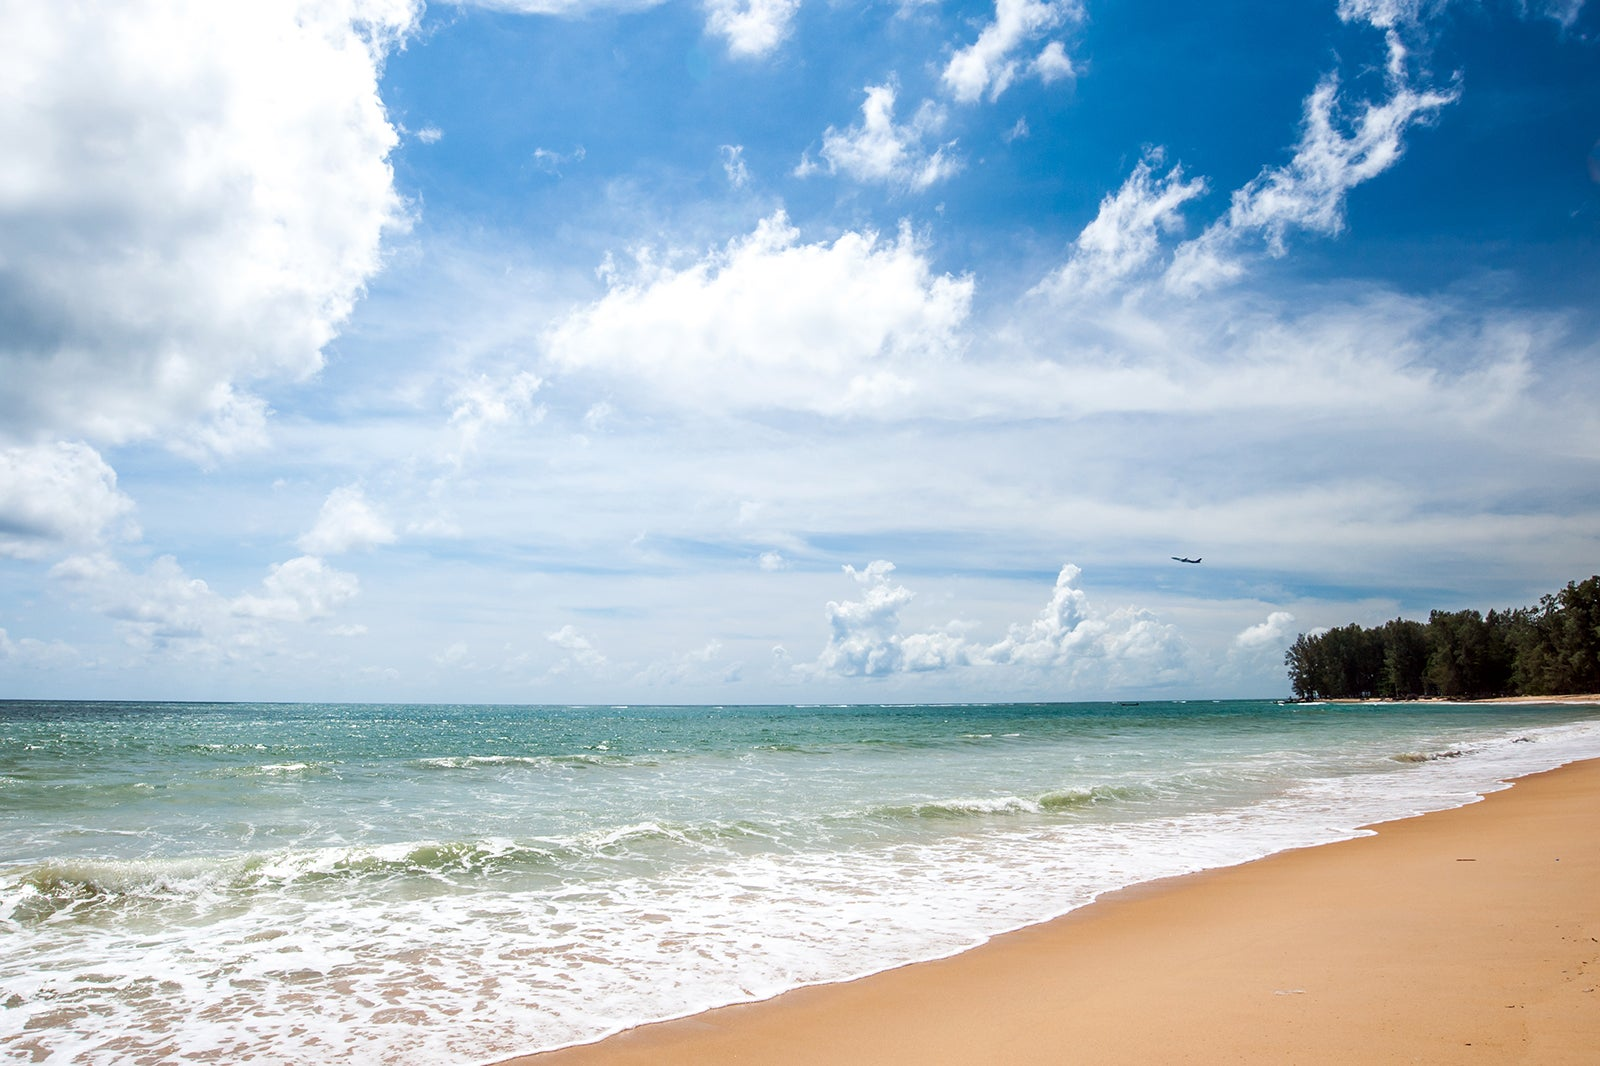 8 Best Things to Do in Nai Yang Beach - What is Nai Yang Beach Most Famous For? – Go Guides